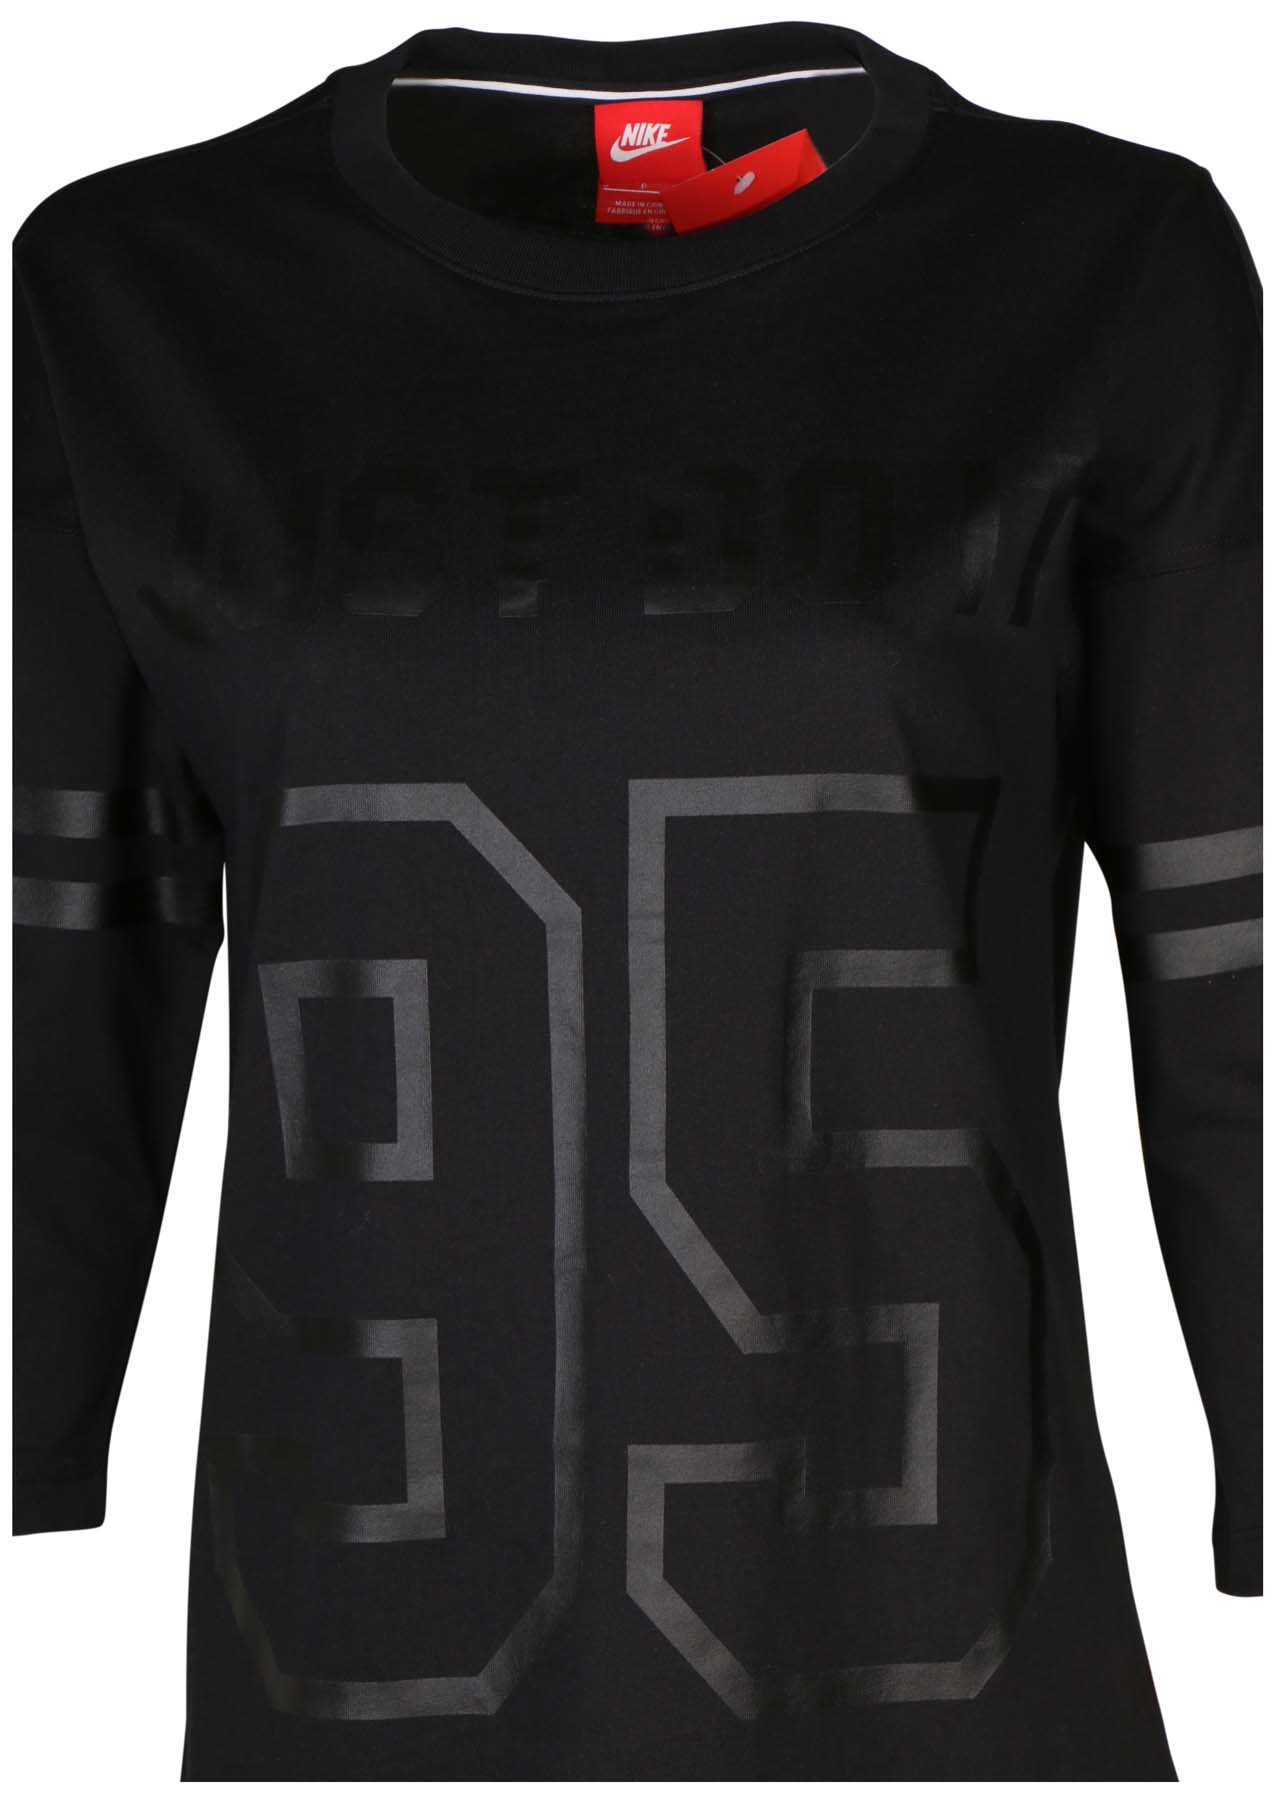 Xs black t shirt -  Picture 3 Of 7